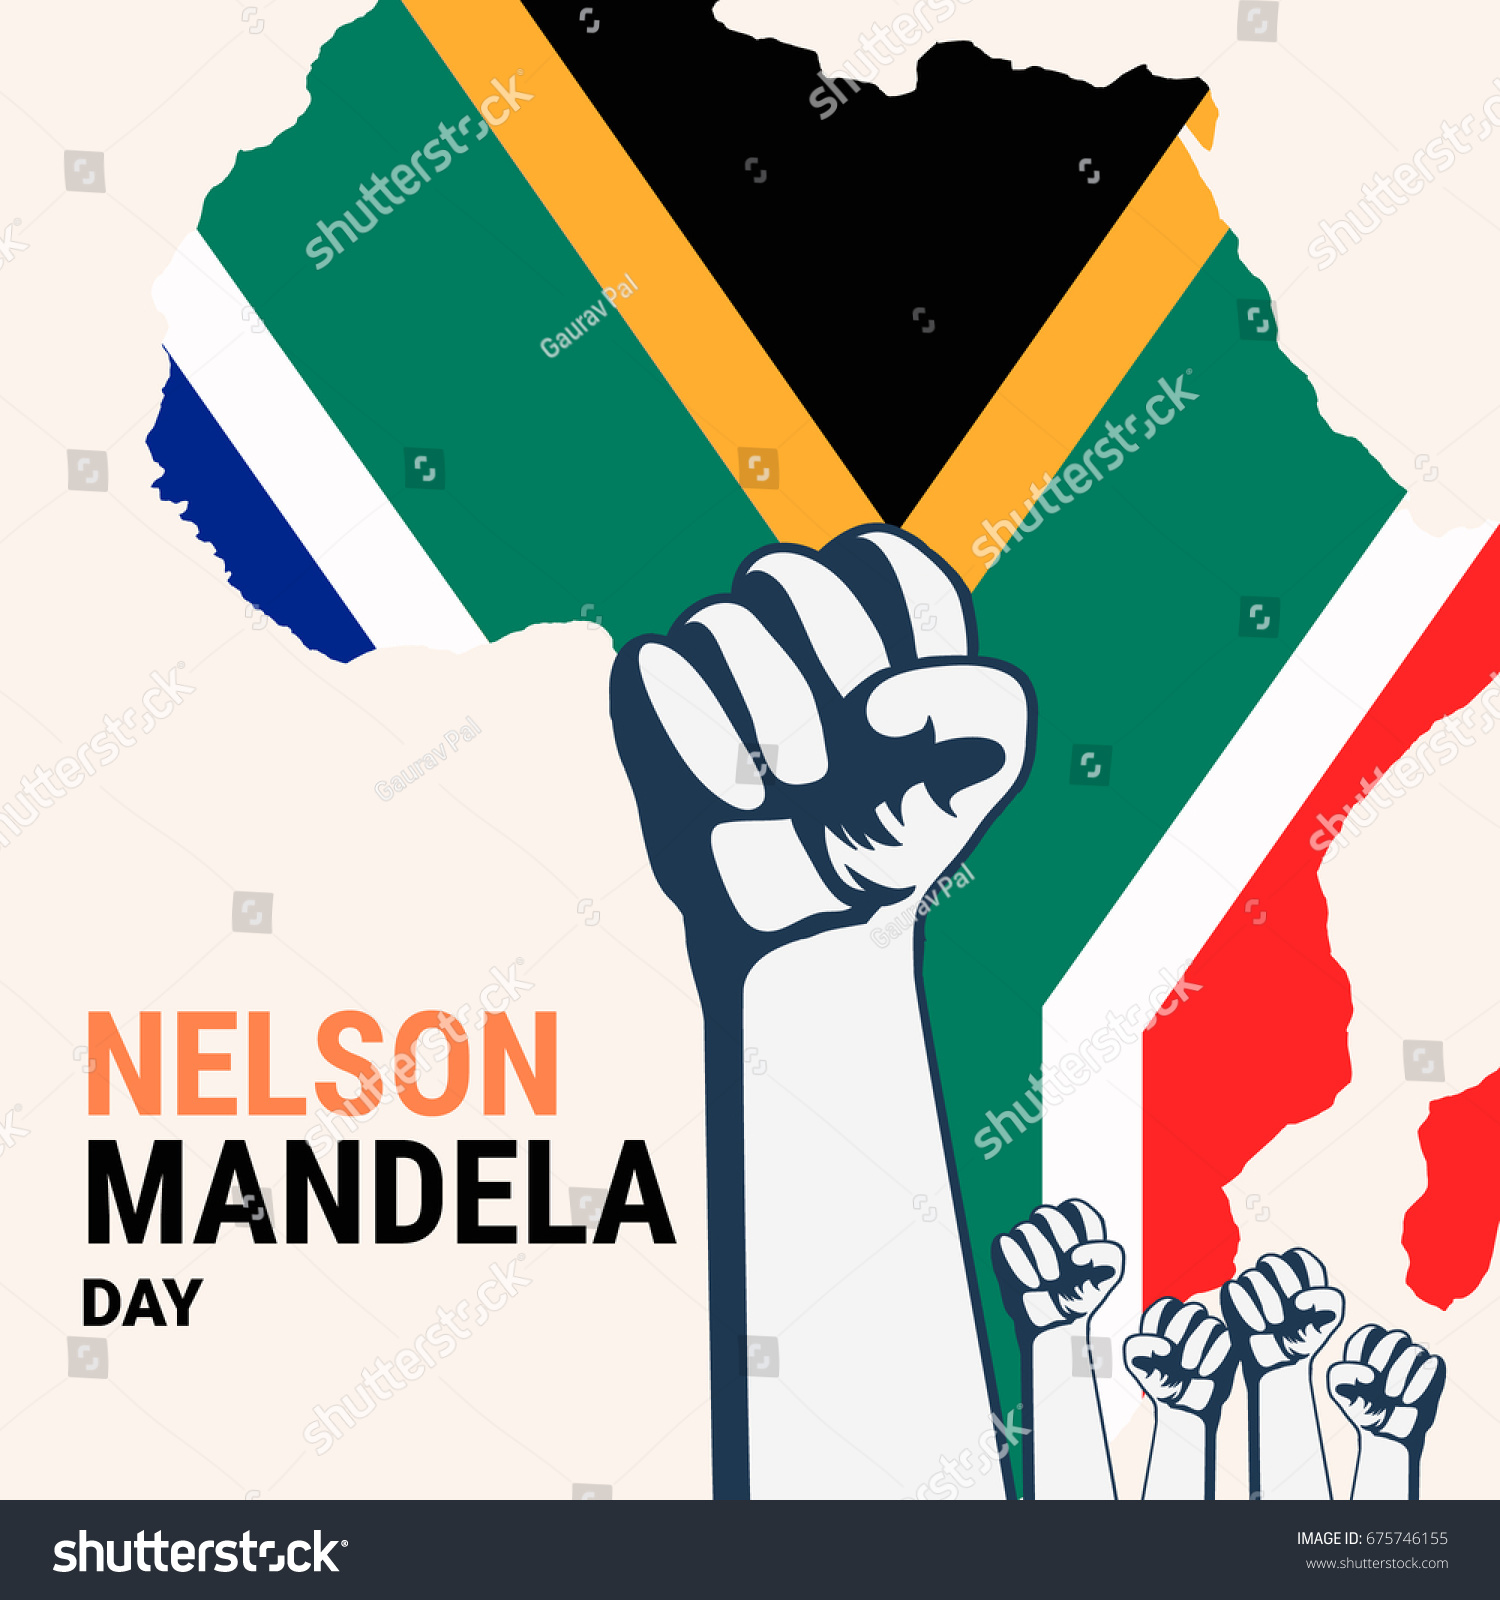 nelson mandela day concept art showing stock vector 675746155 rh shutterstock com Nelson Mandela Drawing Nelson Mandela Day Clip Art